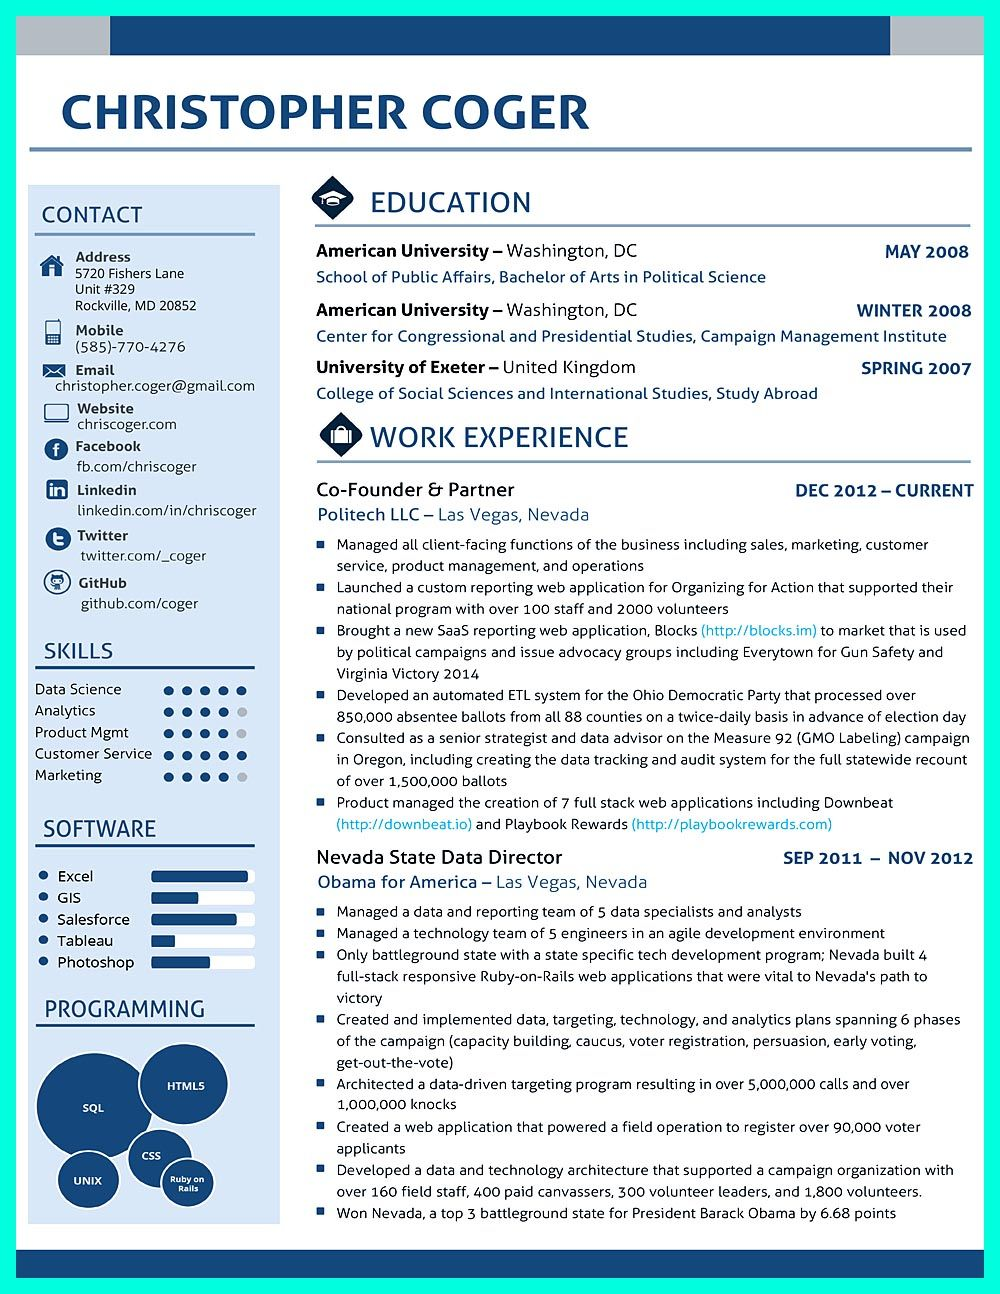 Administrative Assistant Resume For Better Job Opportunities Data Scientist Resume Include Everything About Your